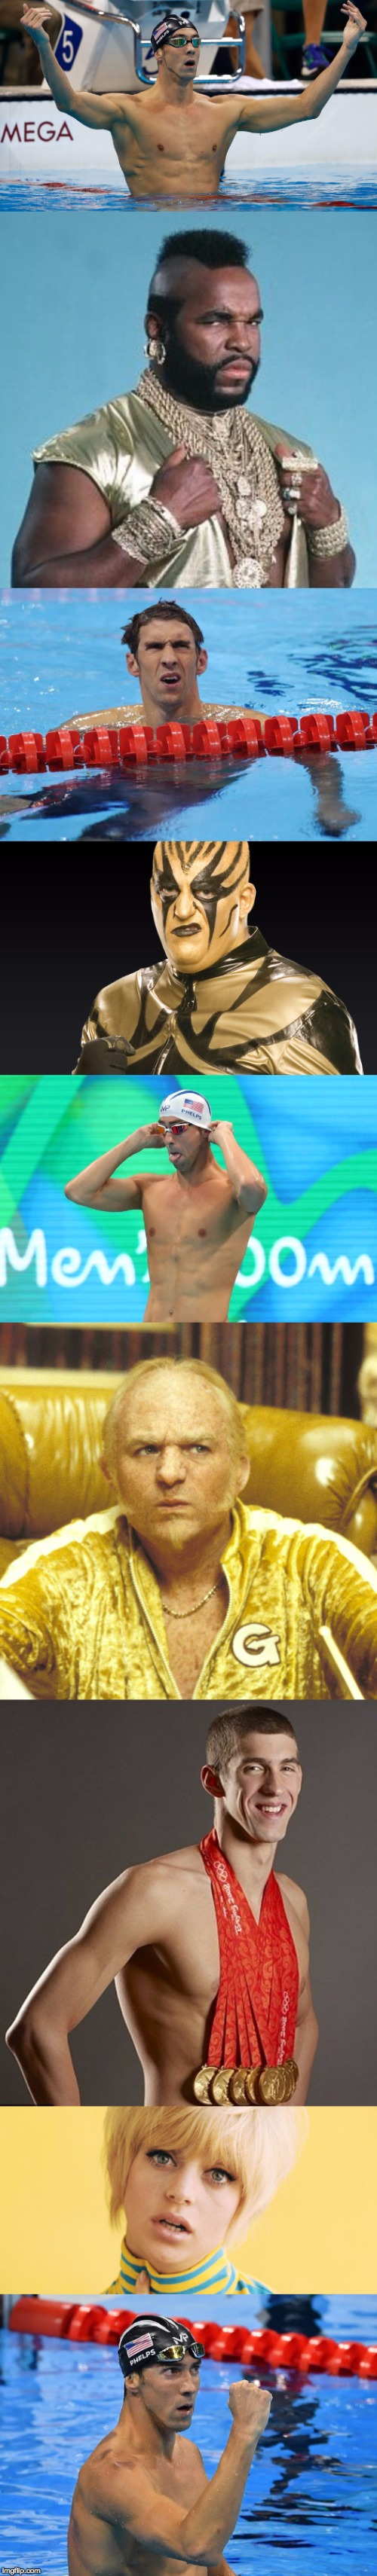 The Legend! | image tagged in memes,funny,michael phelps,2016 olympics | made w/ Imgflip meme maker